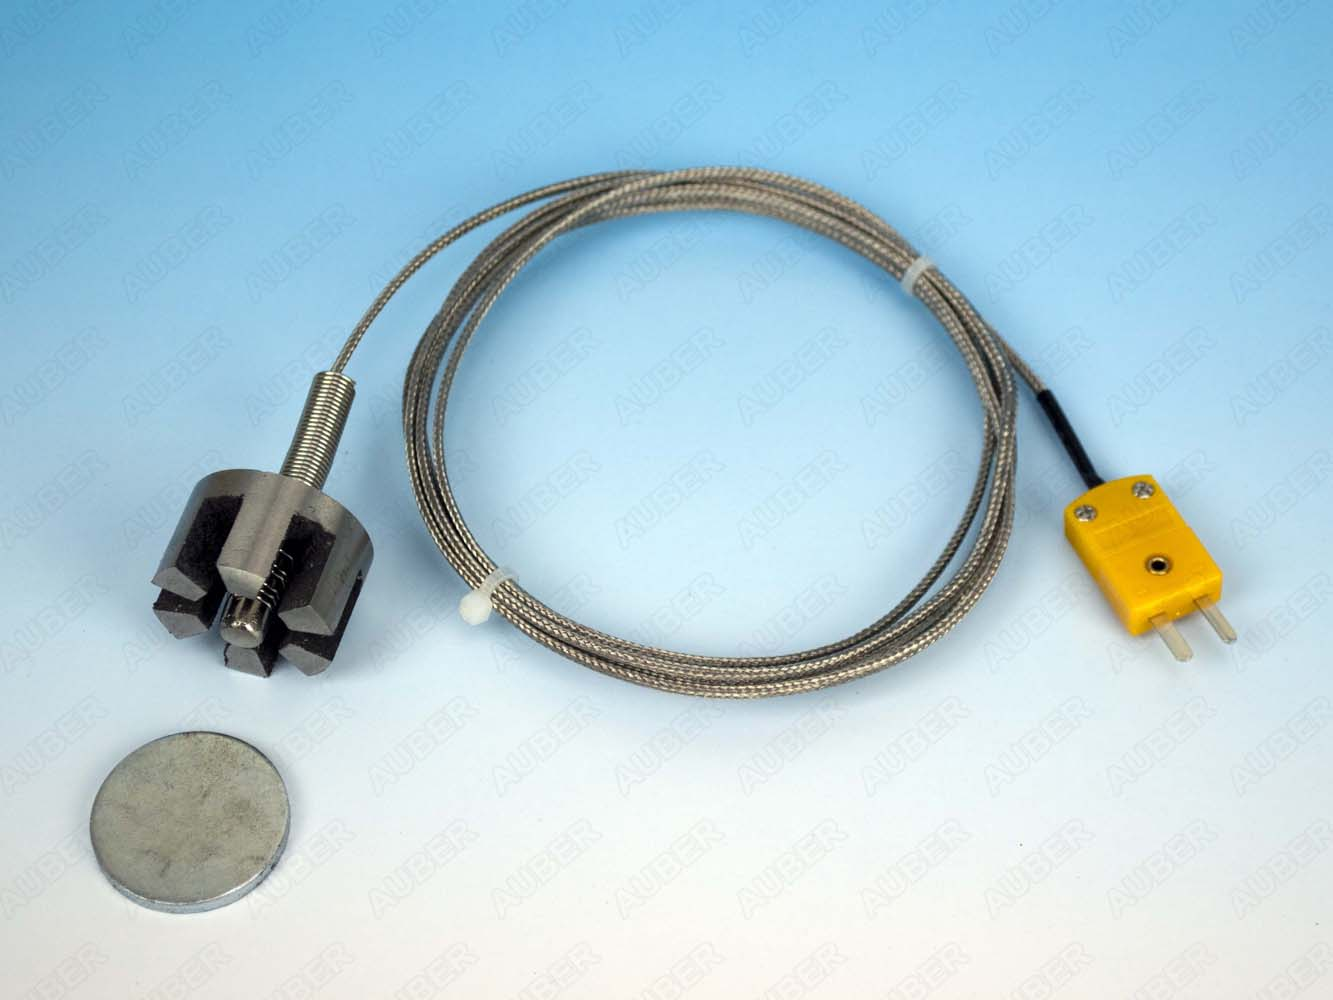 K Type Magnet Probe For Surfaces And Walls Tc K Mag